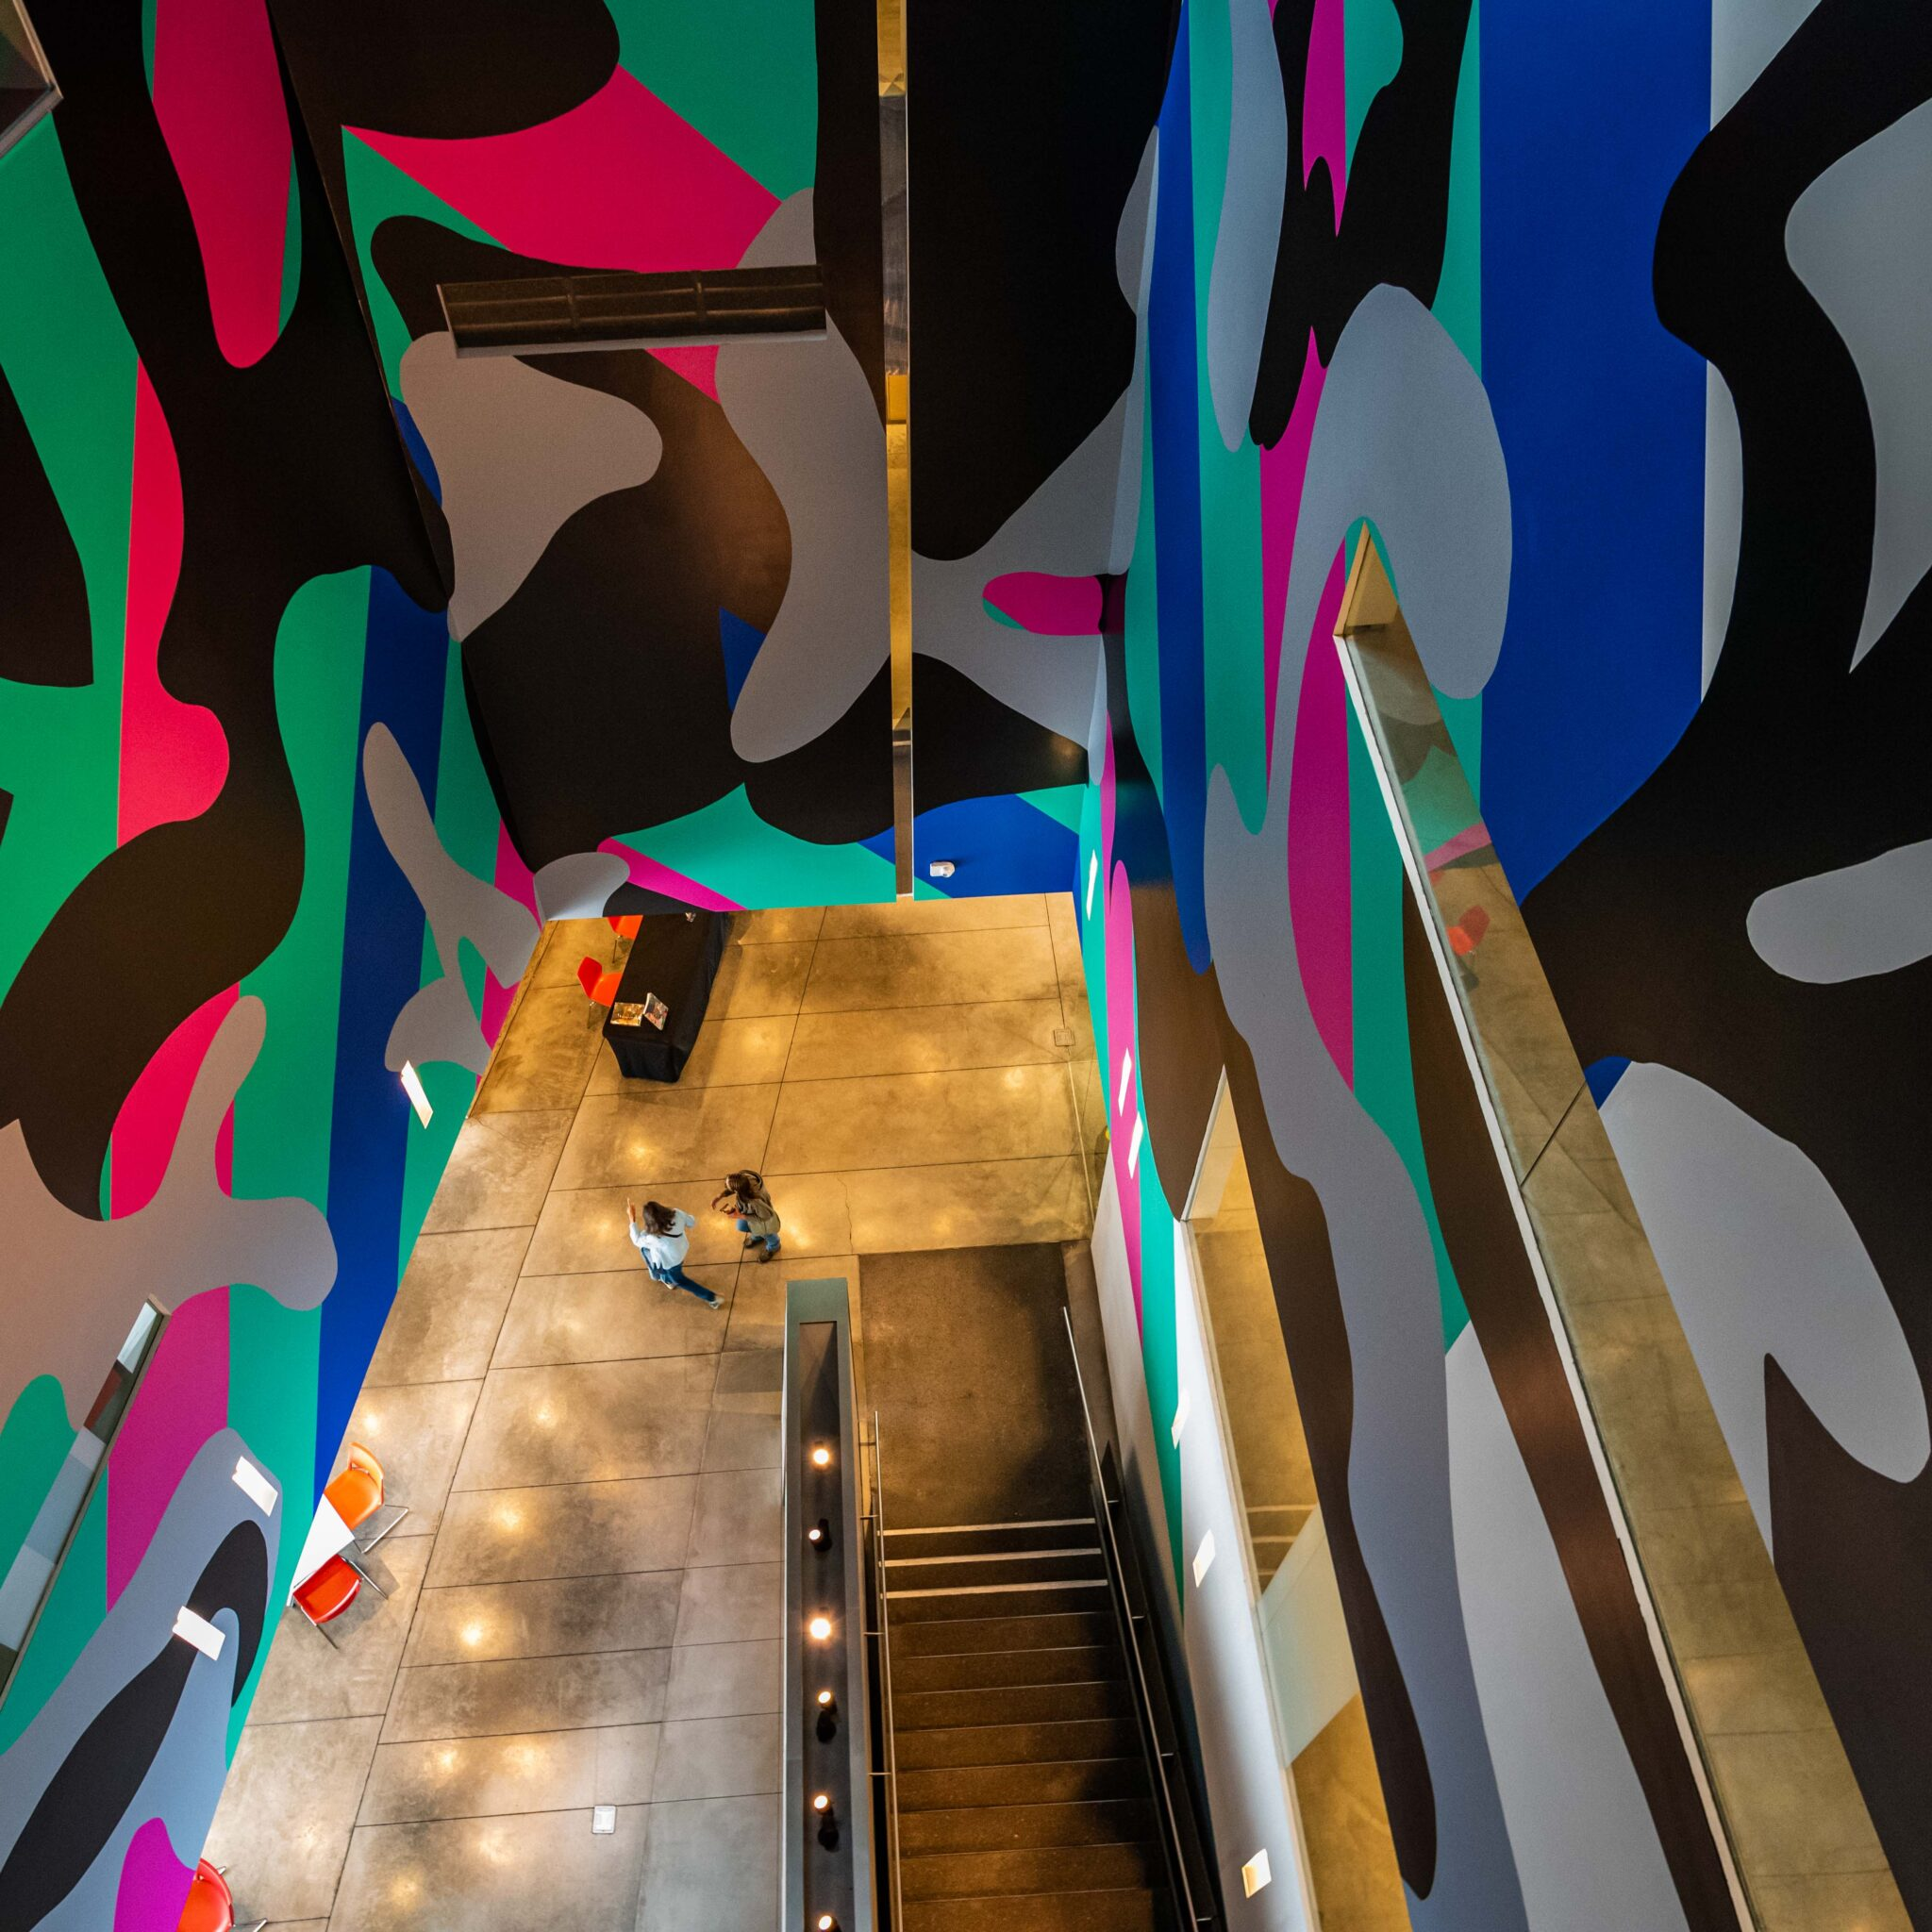 nevada art museum, colorful, pattern, escalator, reno in transition, chris allan, view, perspective, covid transition time for Reno